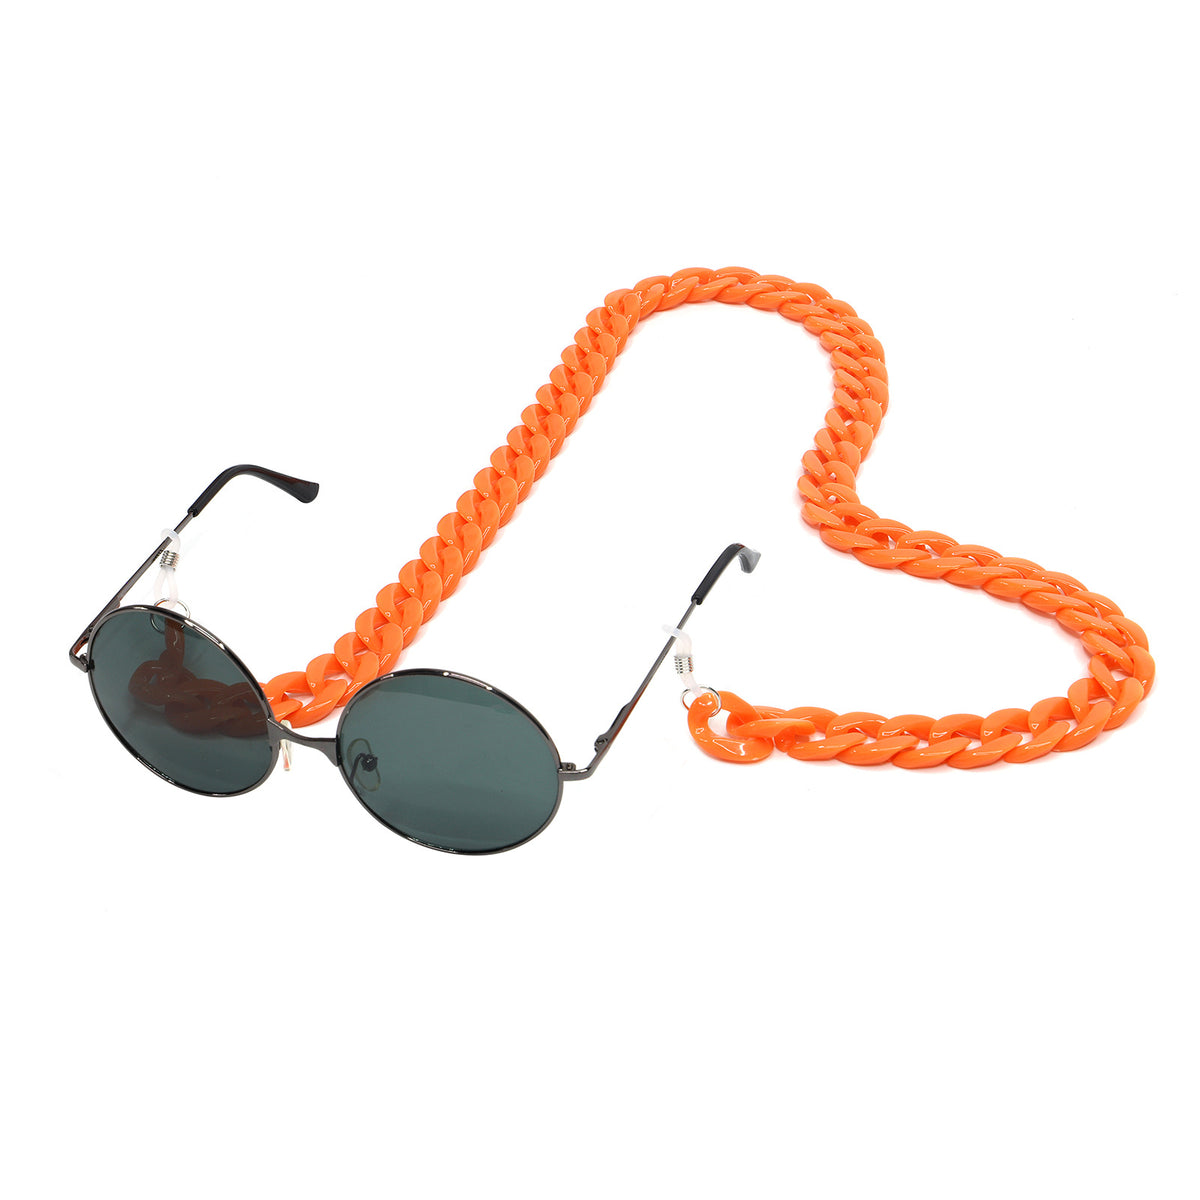 Orange Sunnies Chain